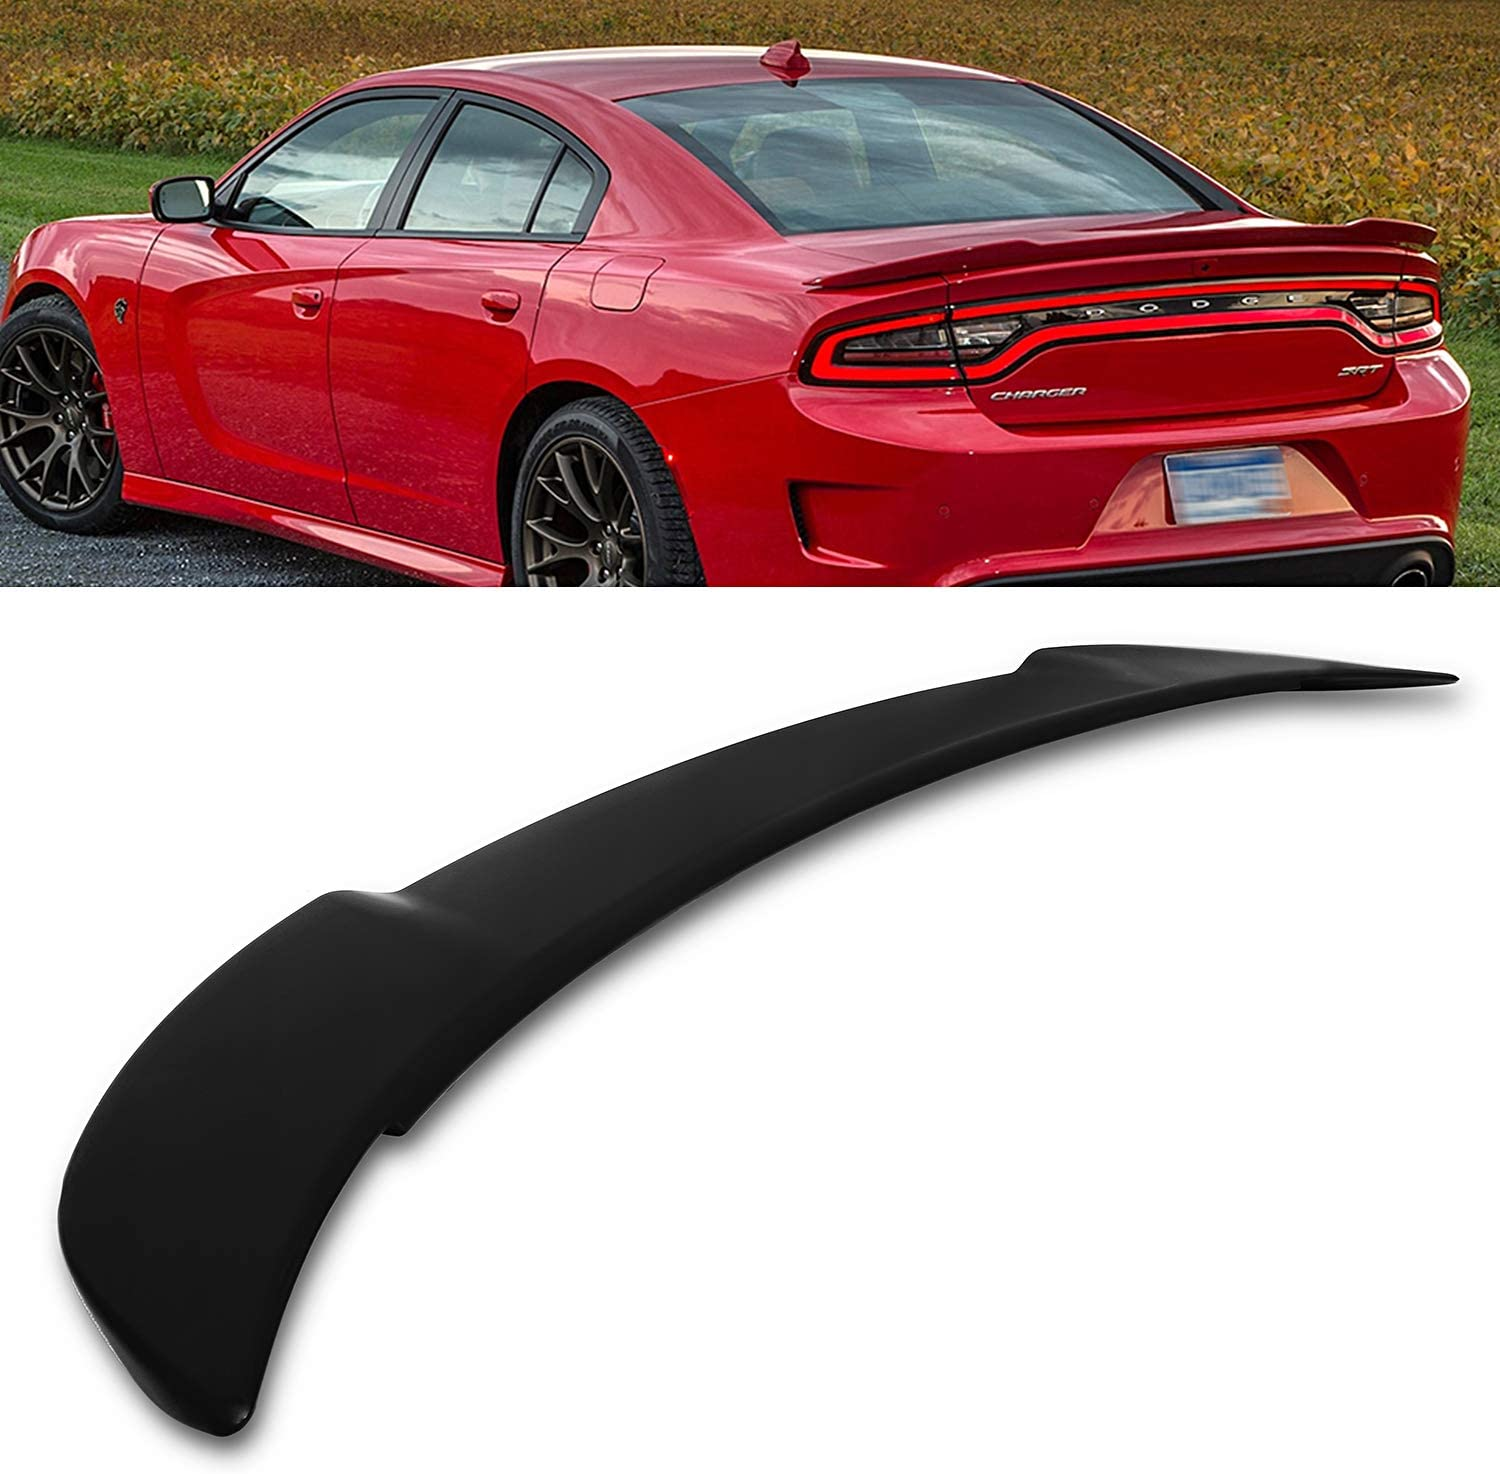 amazon com modifystreet for 11 18 dodge charger hellcat style flush mount rear trunk spoiler wing automotive modifystreet for 11 18 dodge charger hellcat style flush mount rear trunk spoiler wing